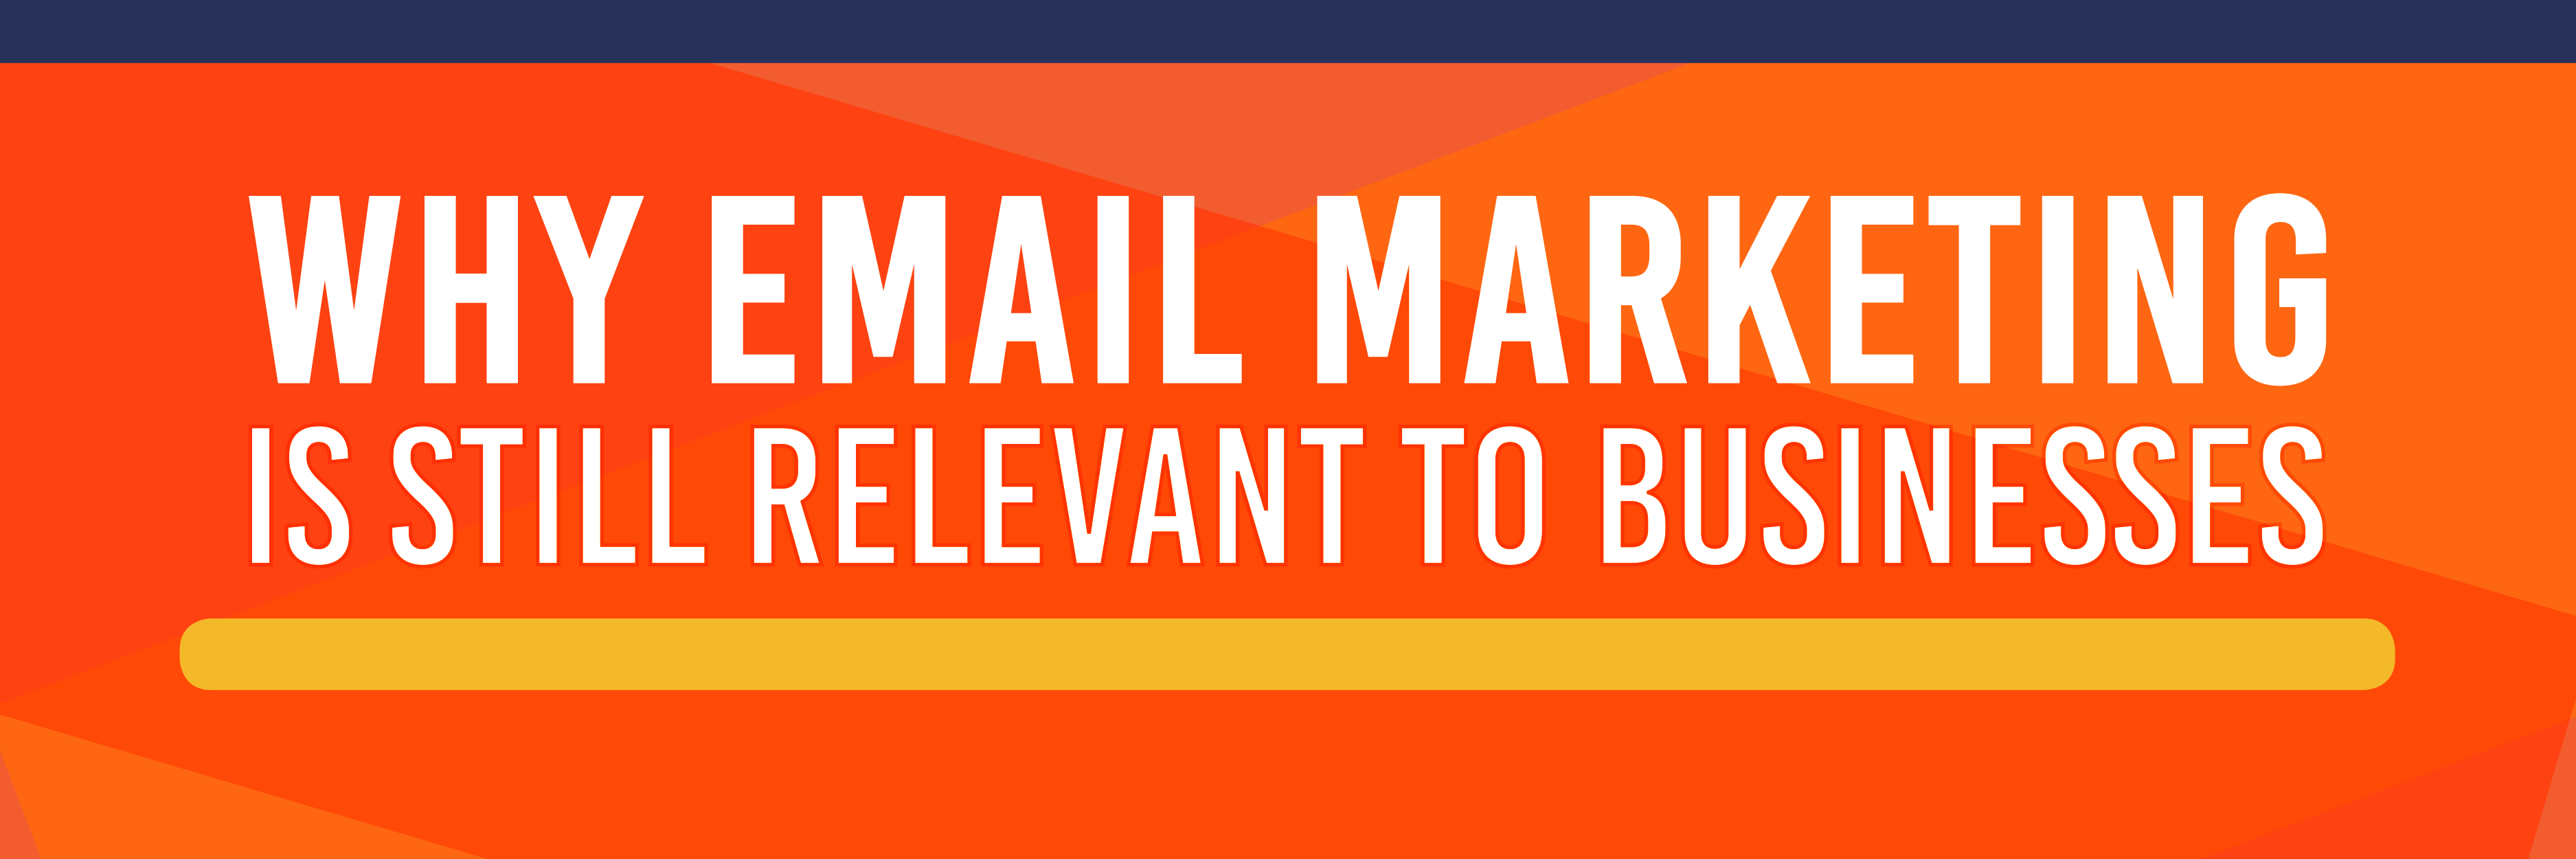 Email Marketing Is Still Relevant